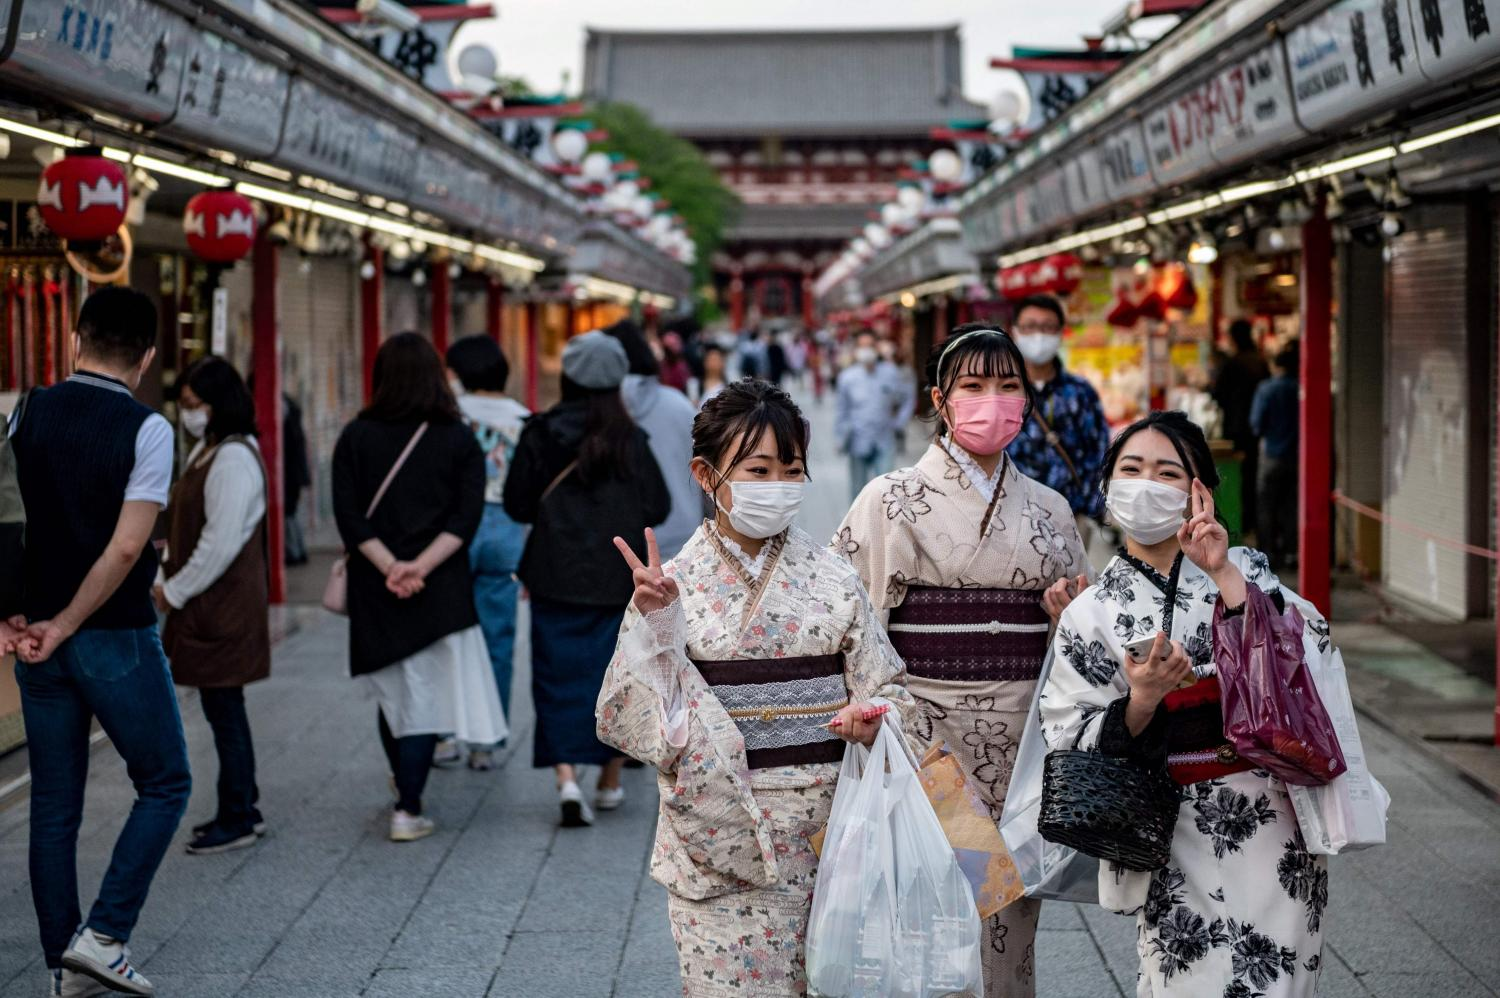 Women in traditional outfits visit Sensoji temple in Tokyo on April 25, 2021, during the first day of a new Covid-19 state of emergency covering the Tokyo, Osaka, Kyoto and Hyogo regions.(AFP photo)